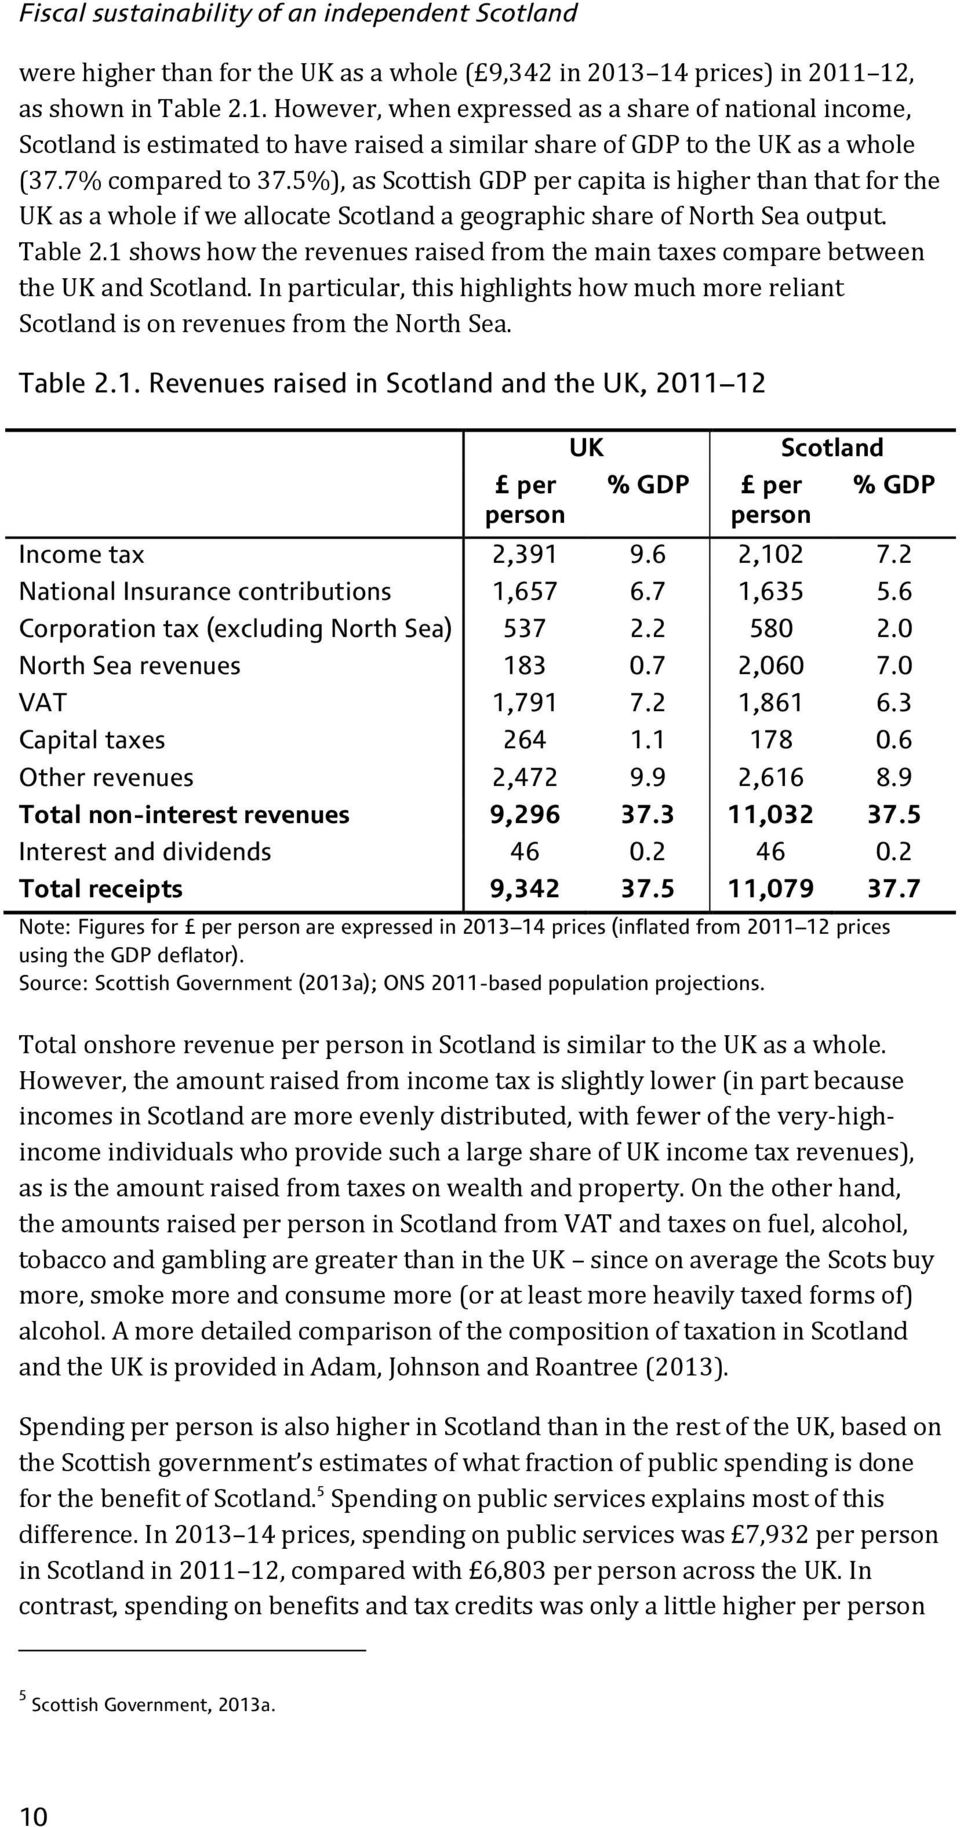 7% compared to 37.5%), as Scottish GDP per capita is higher than that for the UK as a whole if we allocate Scotland a geographic share of North Sea output. Table 2.